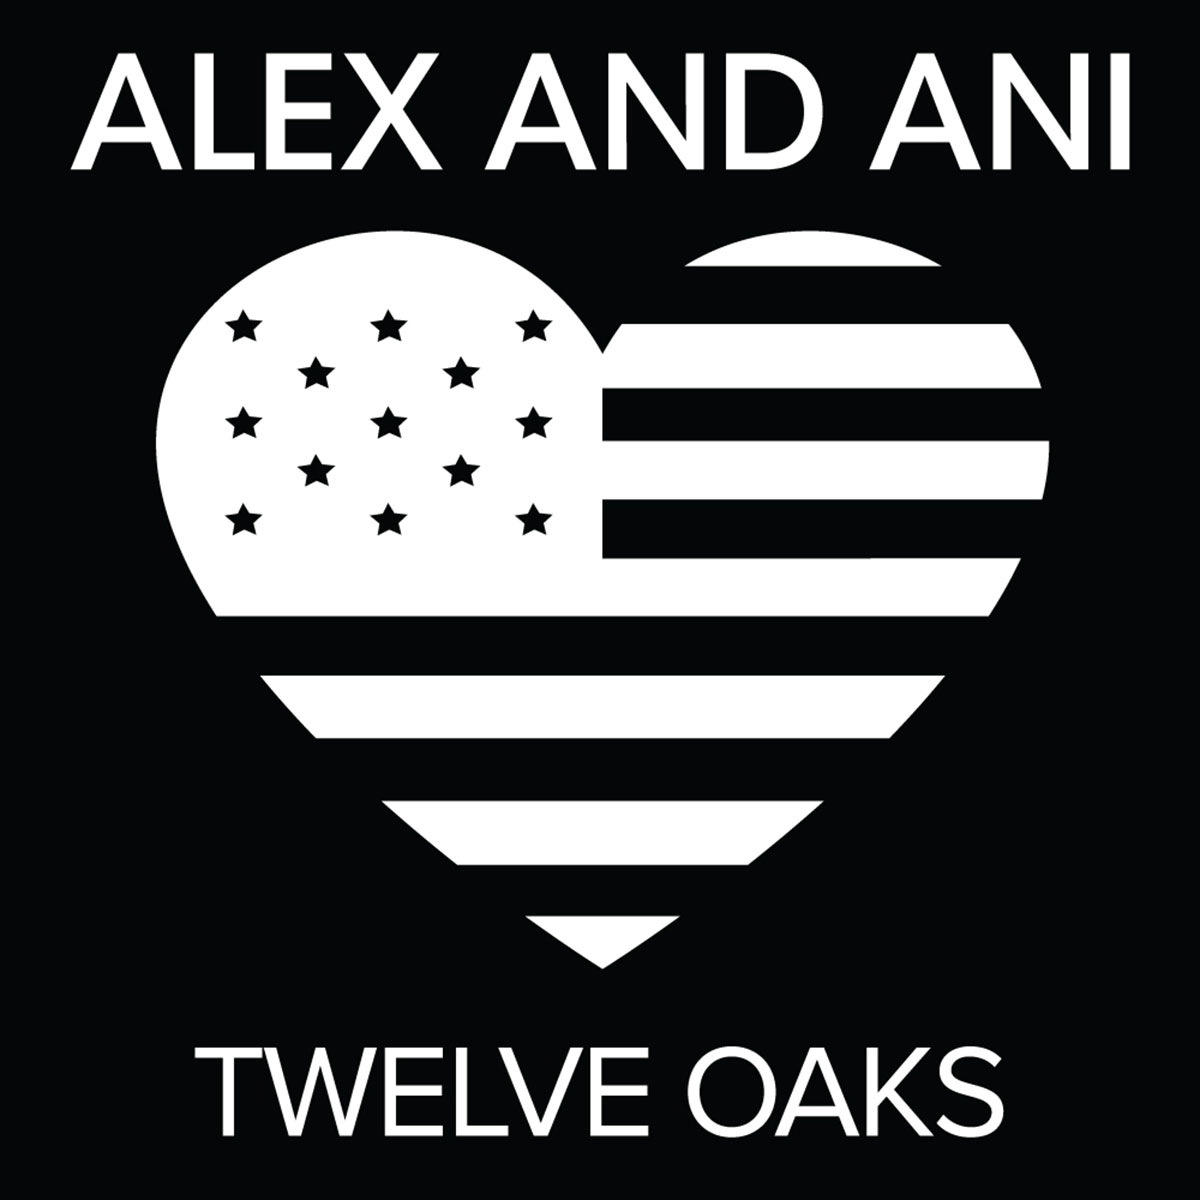 ALEX AND ANI image 0